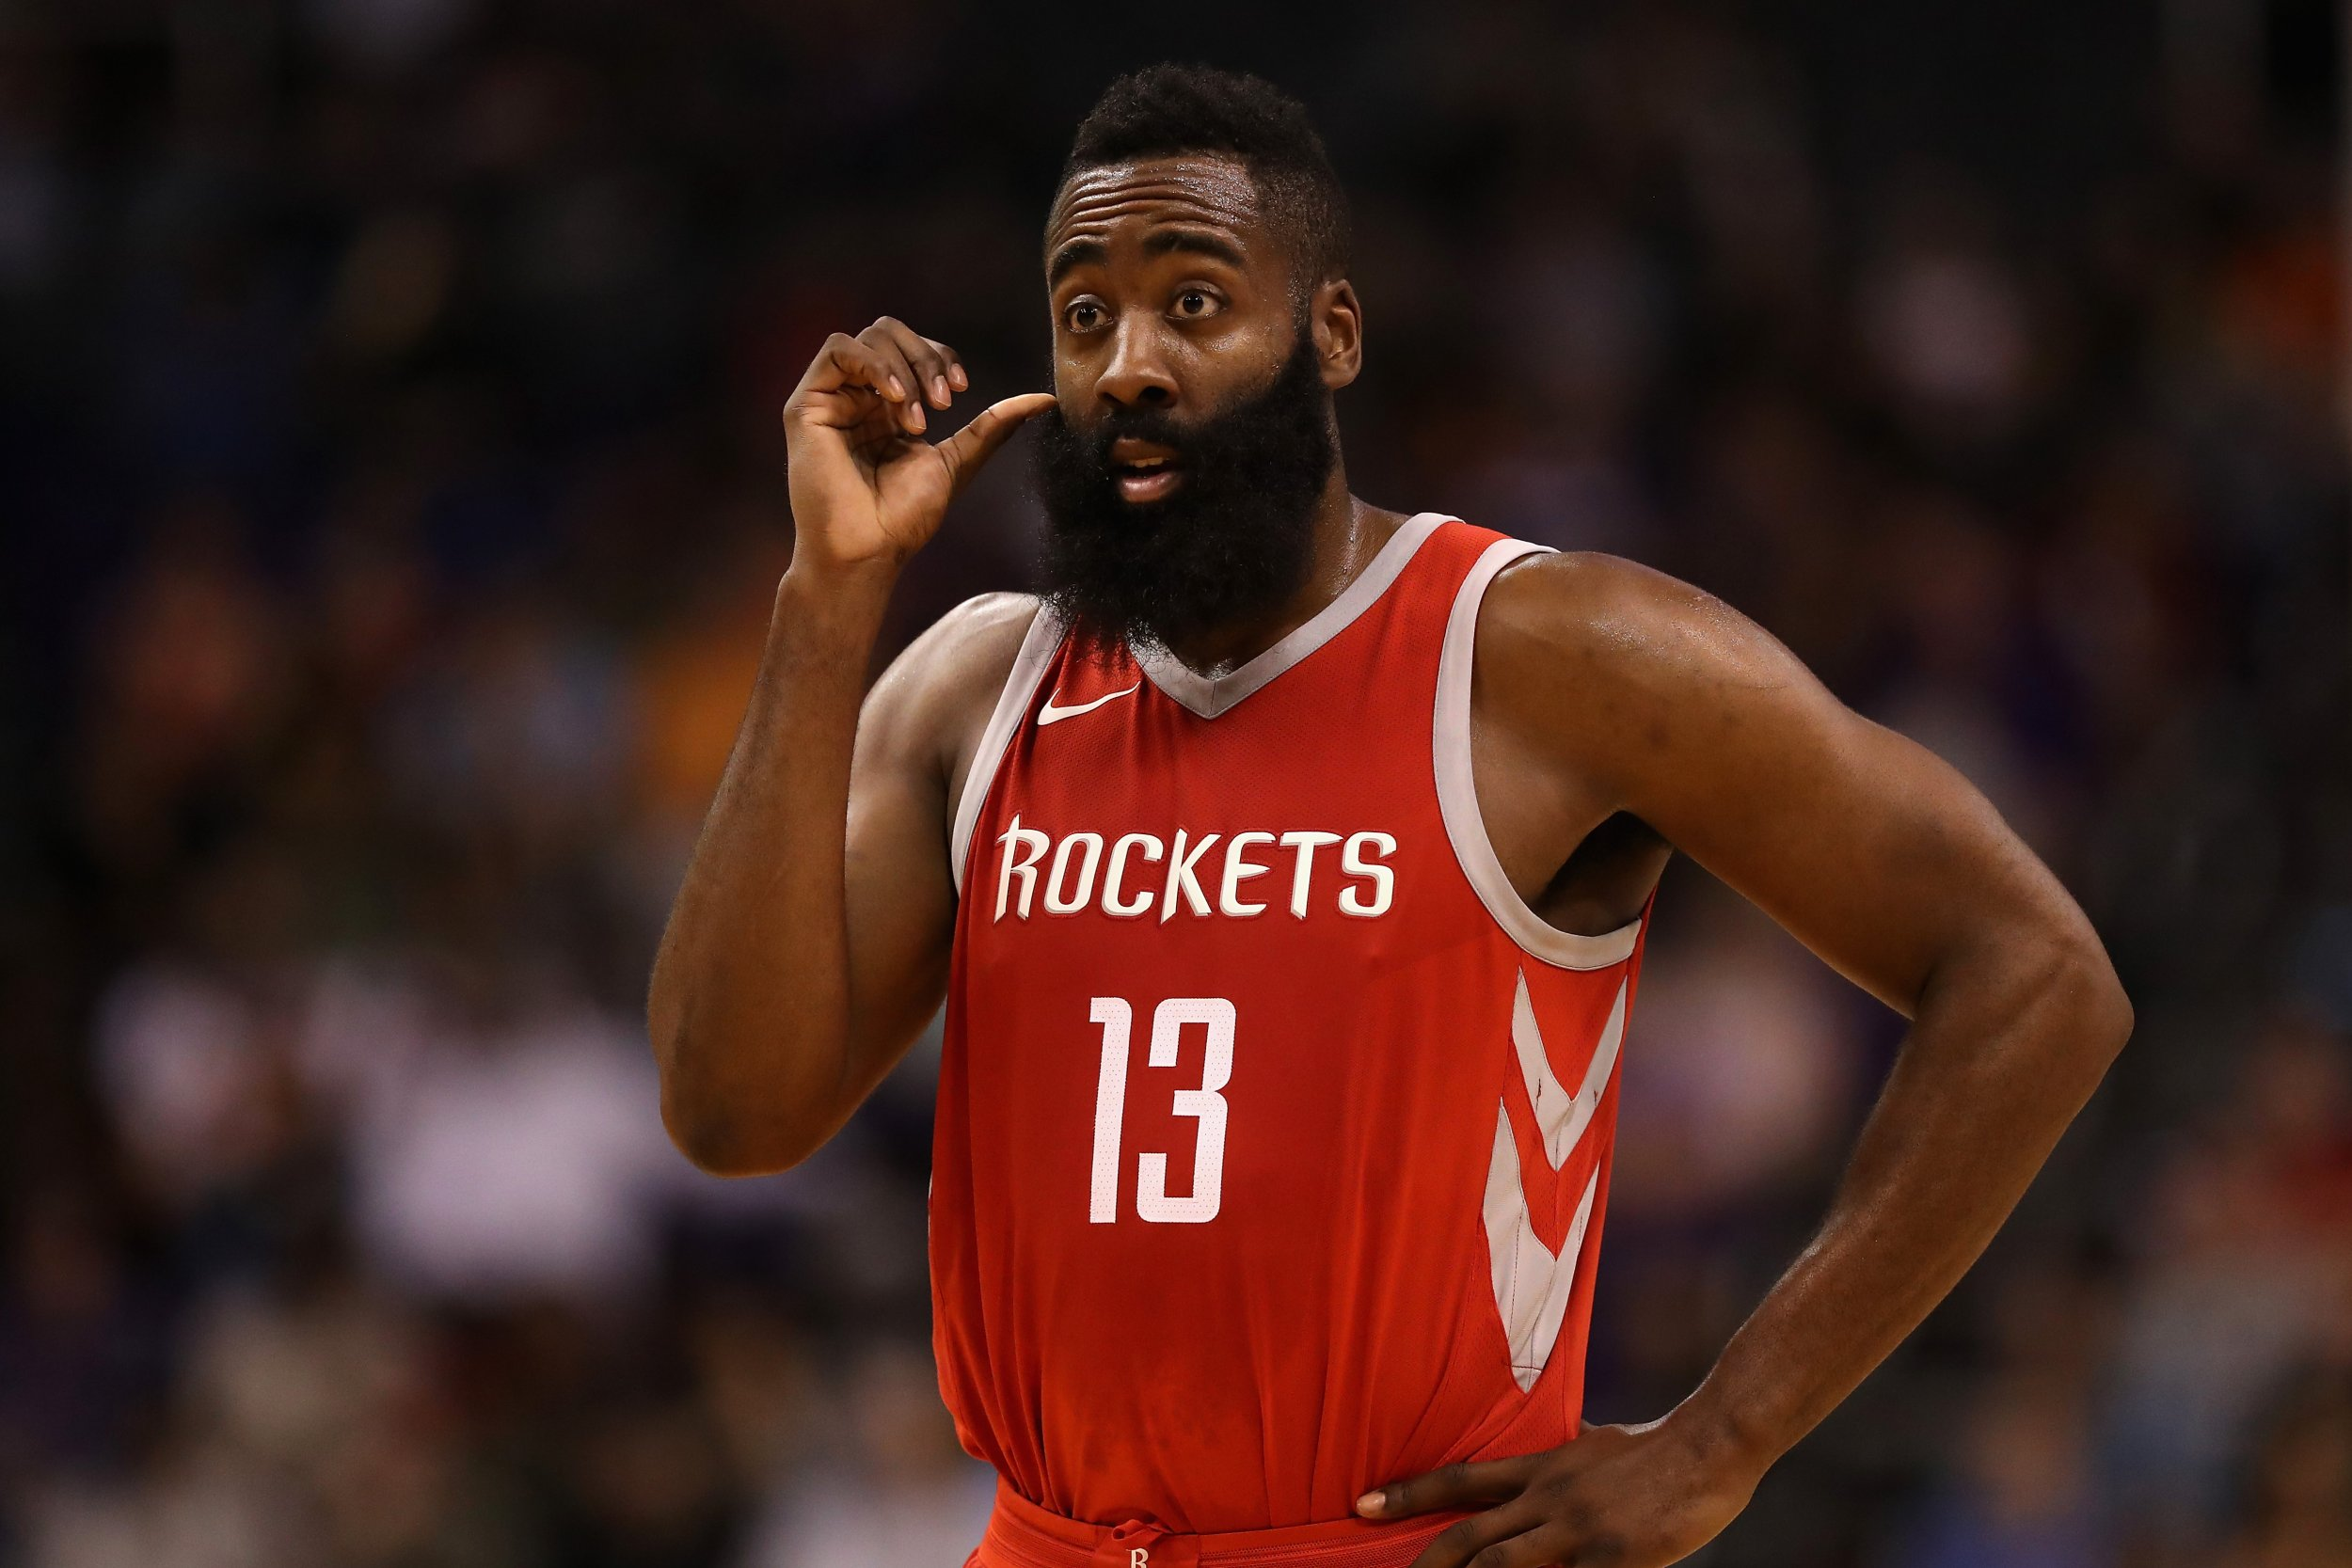 huge selection of 4baee f937d First LeBron James, Now James Harden: Why Has the NBA ...